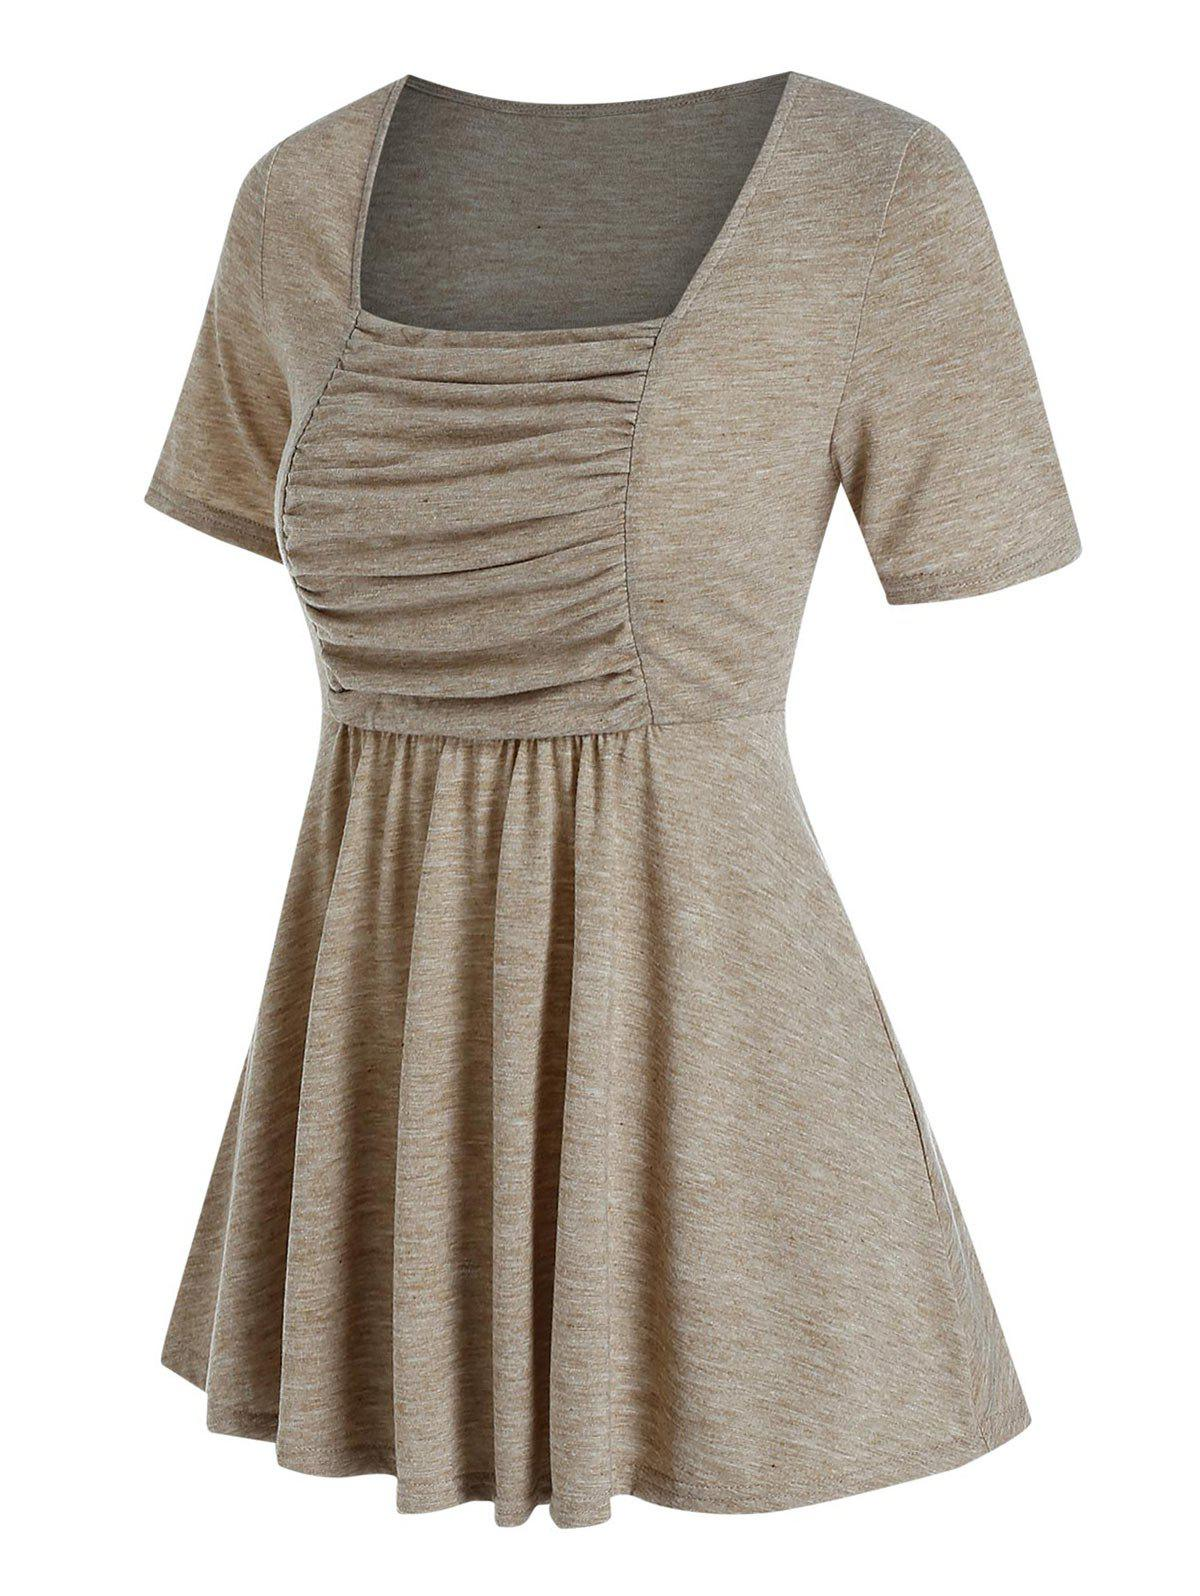 Square Neck Ruched Solid Flare T Shirt - LIGHT COFFEE XXXL